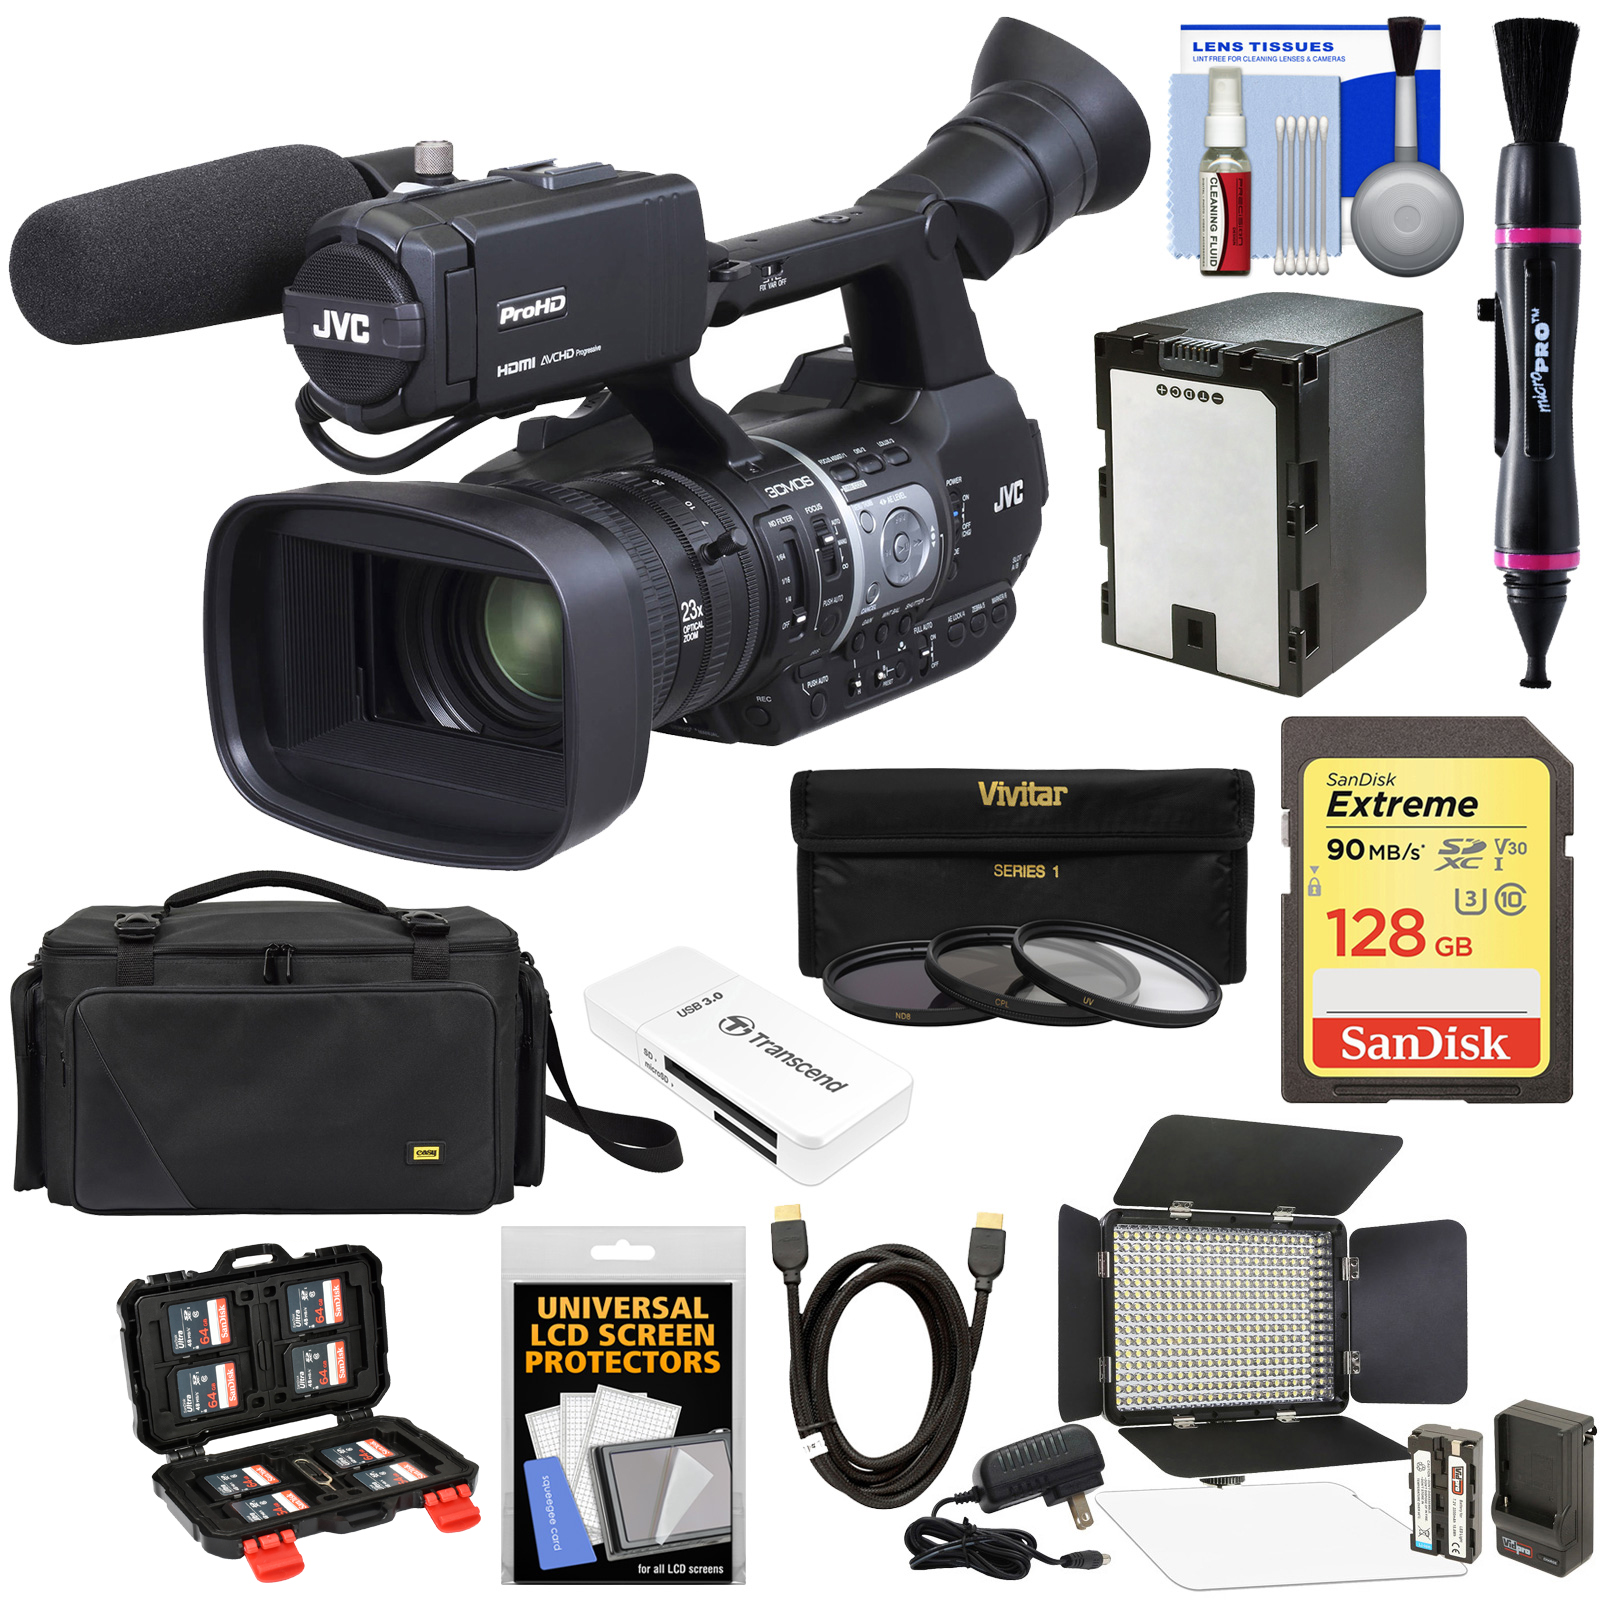 JVC GY-HM620U ProHD Professional Mobile News Camcorder with XLR Microphone + 128GB Card + Battery + Case + LED... by JVC